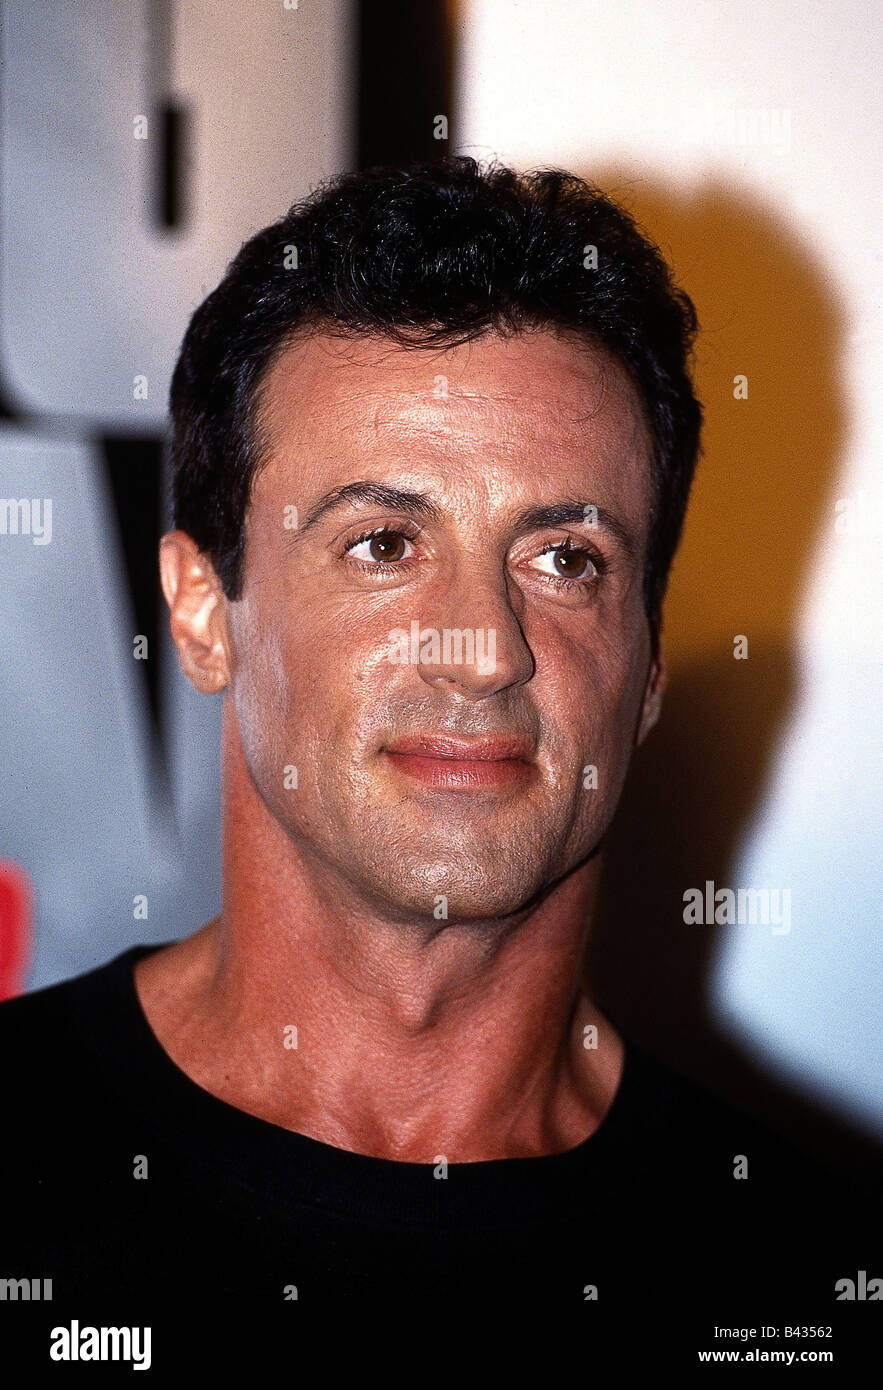 Stallone, Sylvester, * 6.7.1946, American actor, portrait, 1993, Additional-Rights-Clearances-NA - Stock Image